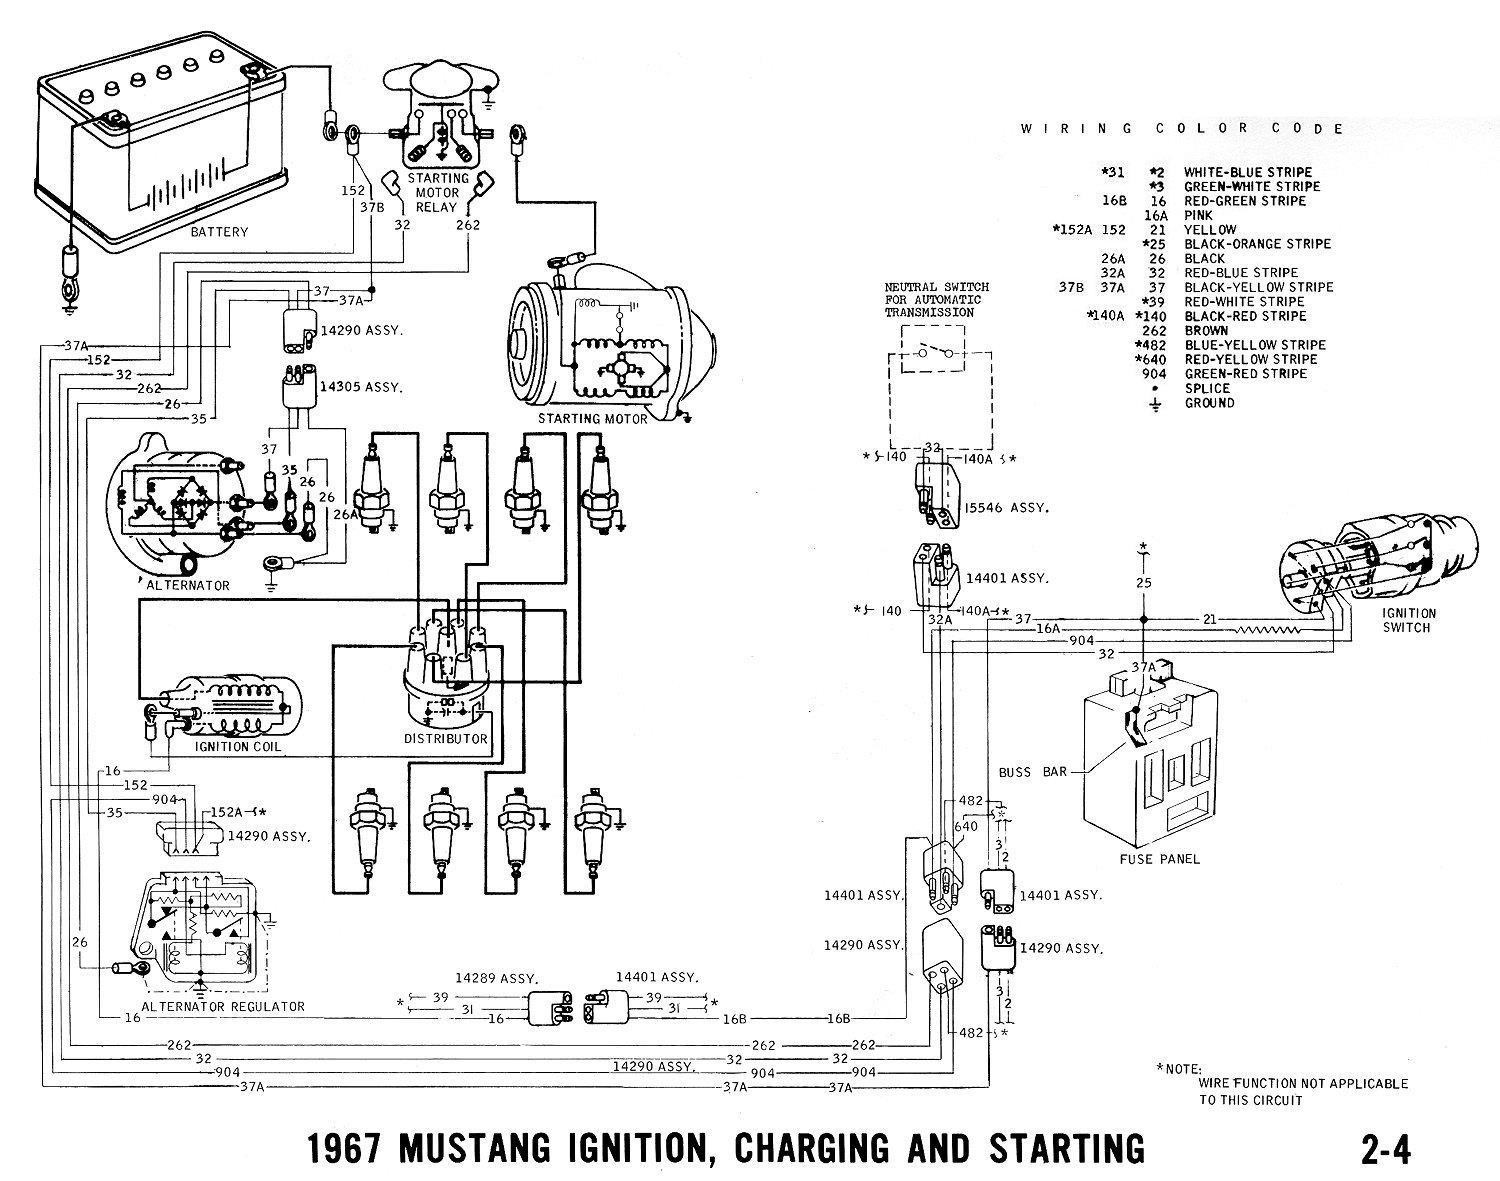 hight resolution of 83 mustang ignition switch wiring diagram wiring diagram inside 1983 mustang ignition wiring diagram